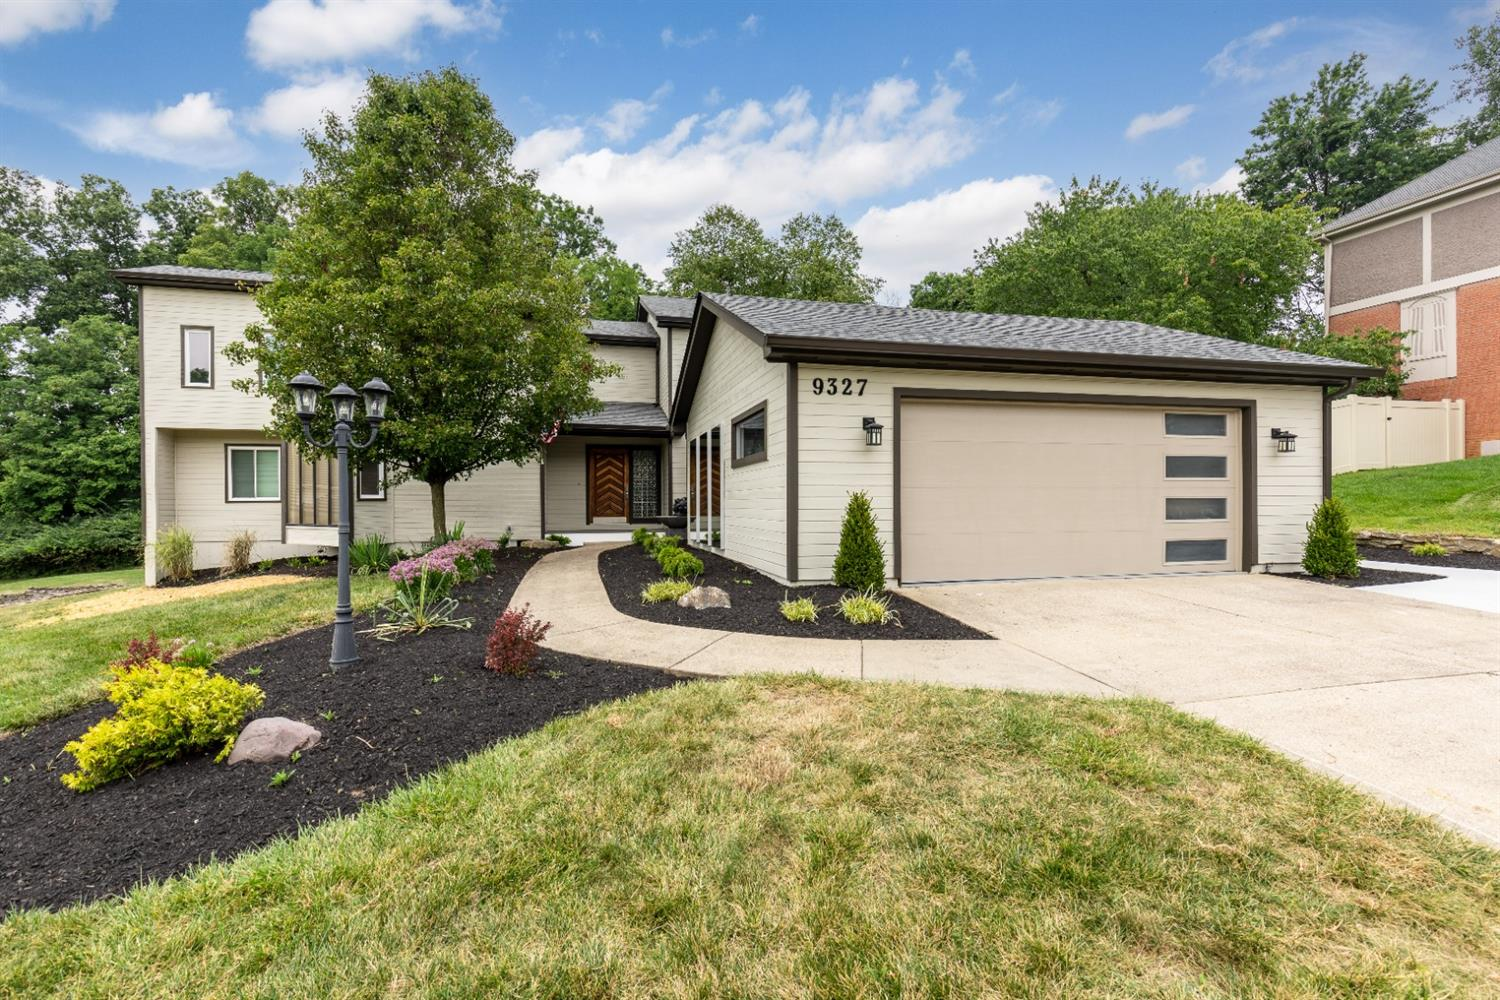 9327 Bluewing Terrace Property Photo 1